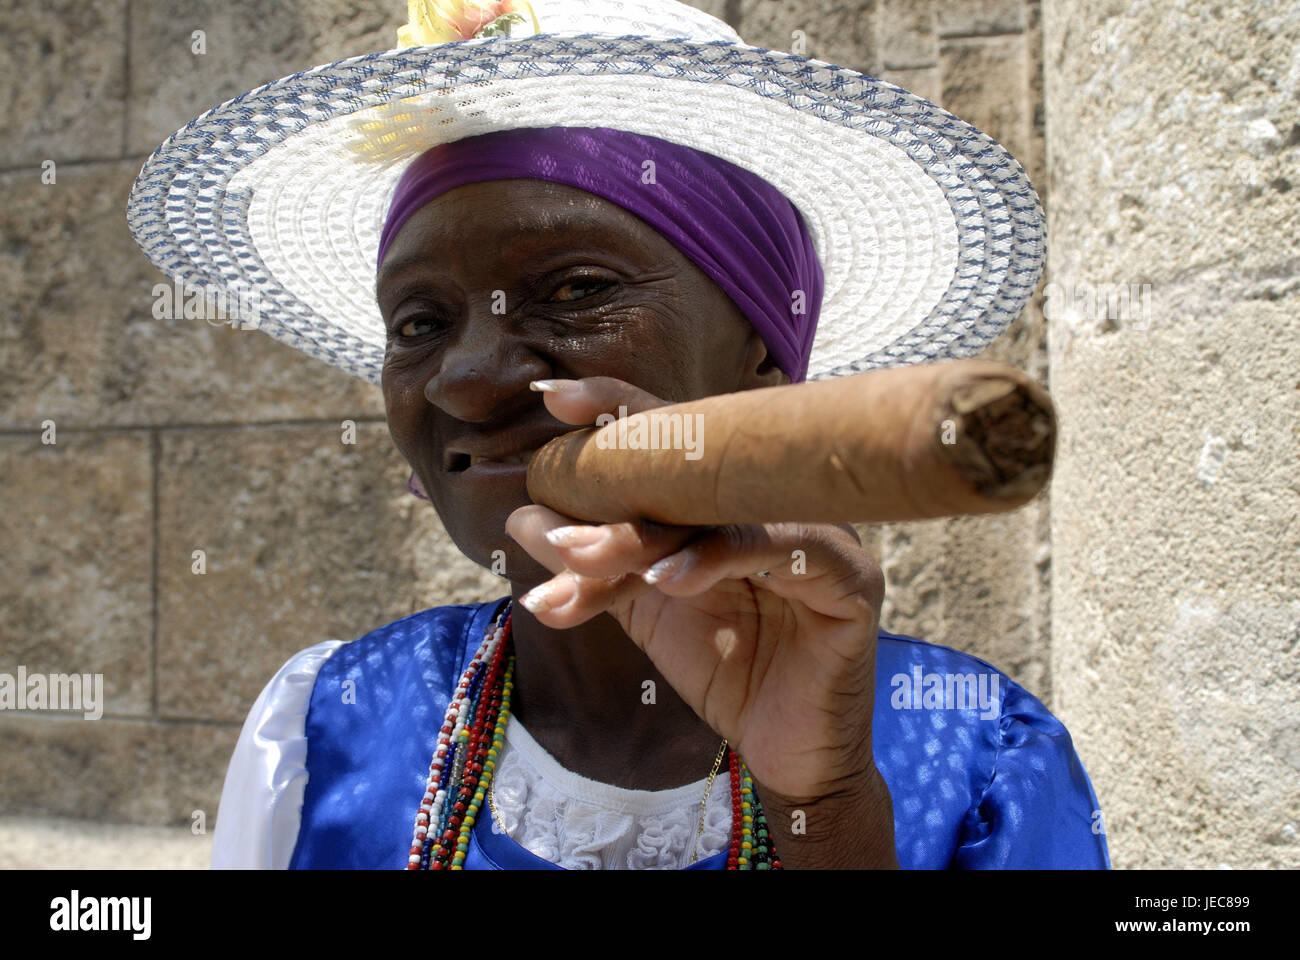 Cuba, Havana, Cuban, cigar, smoke, portrait, the Caribbean, island, person, locals, woman, senior, solar hat, care, - Stock Image